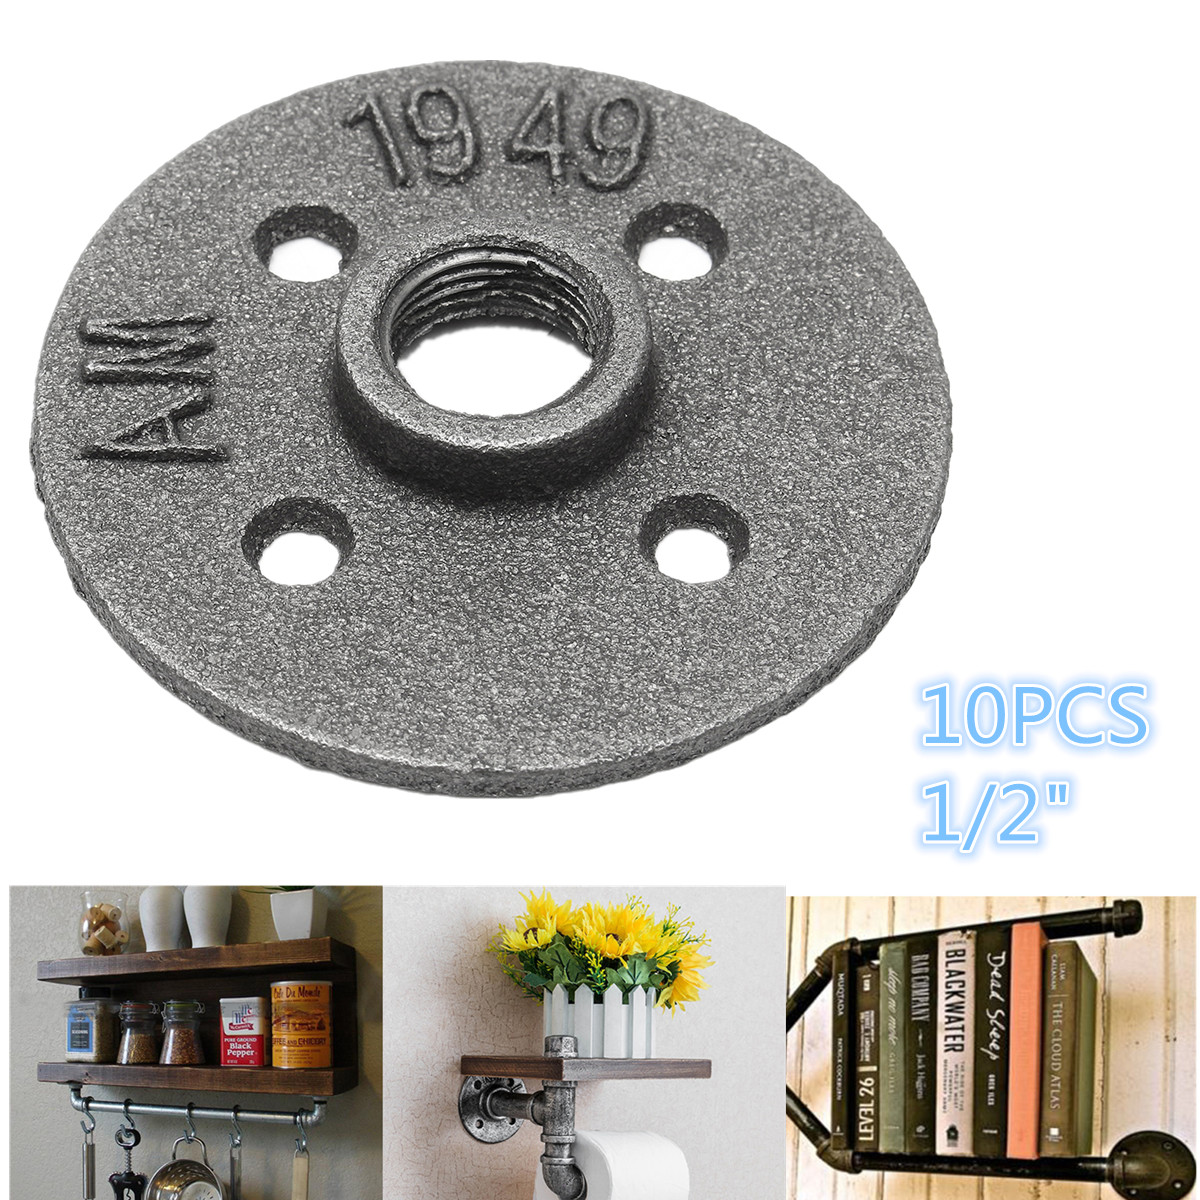 10pcs/lot For 1/2 Pipe DN20 Iron Floor Flange Seat Classic Casting Iron Flange High Quality Pipe Fittings Wall Mount канва с рисунком для вышивания бисером hobby